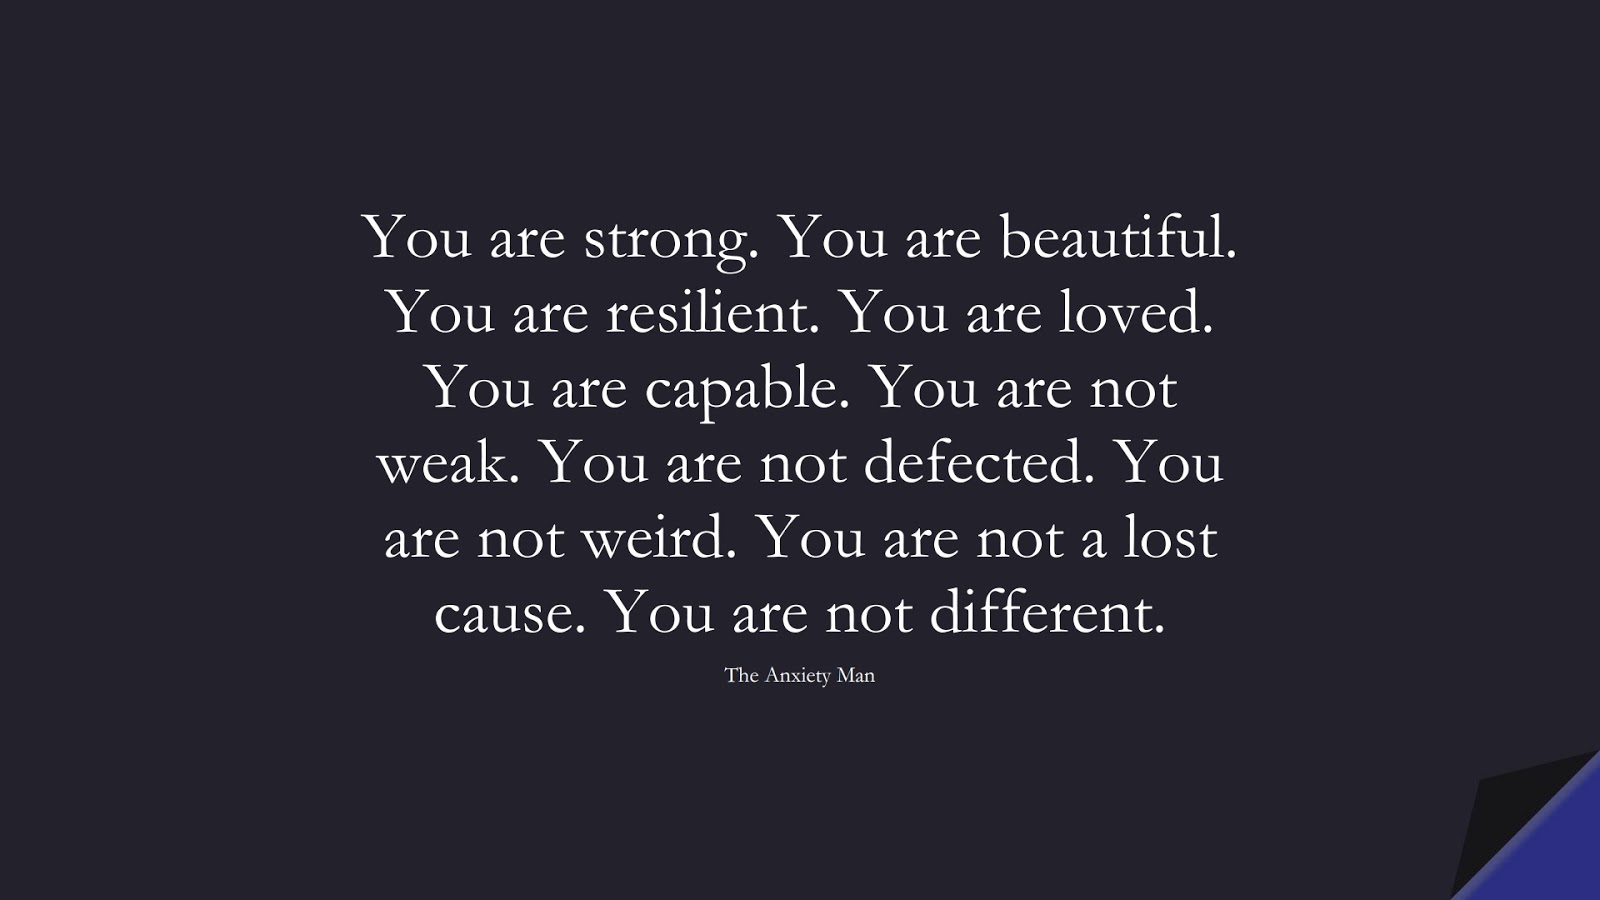 You are strong. You are beautiful. You are resilient. You are loved. You are capable. You are not weak. You are not defected. You are not weird. You are not a lost cause. You are not different. (The Anxiety Man);  #DepressionQuotes